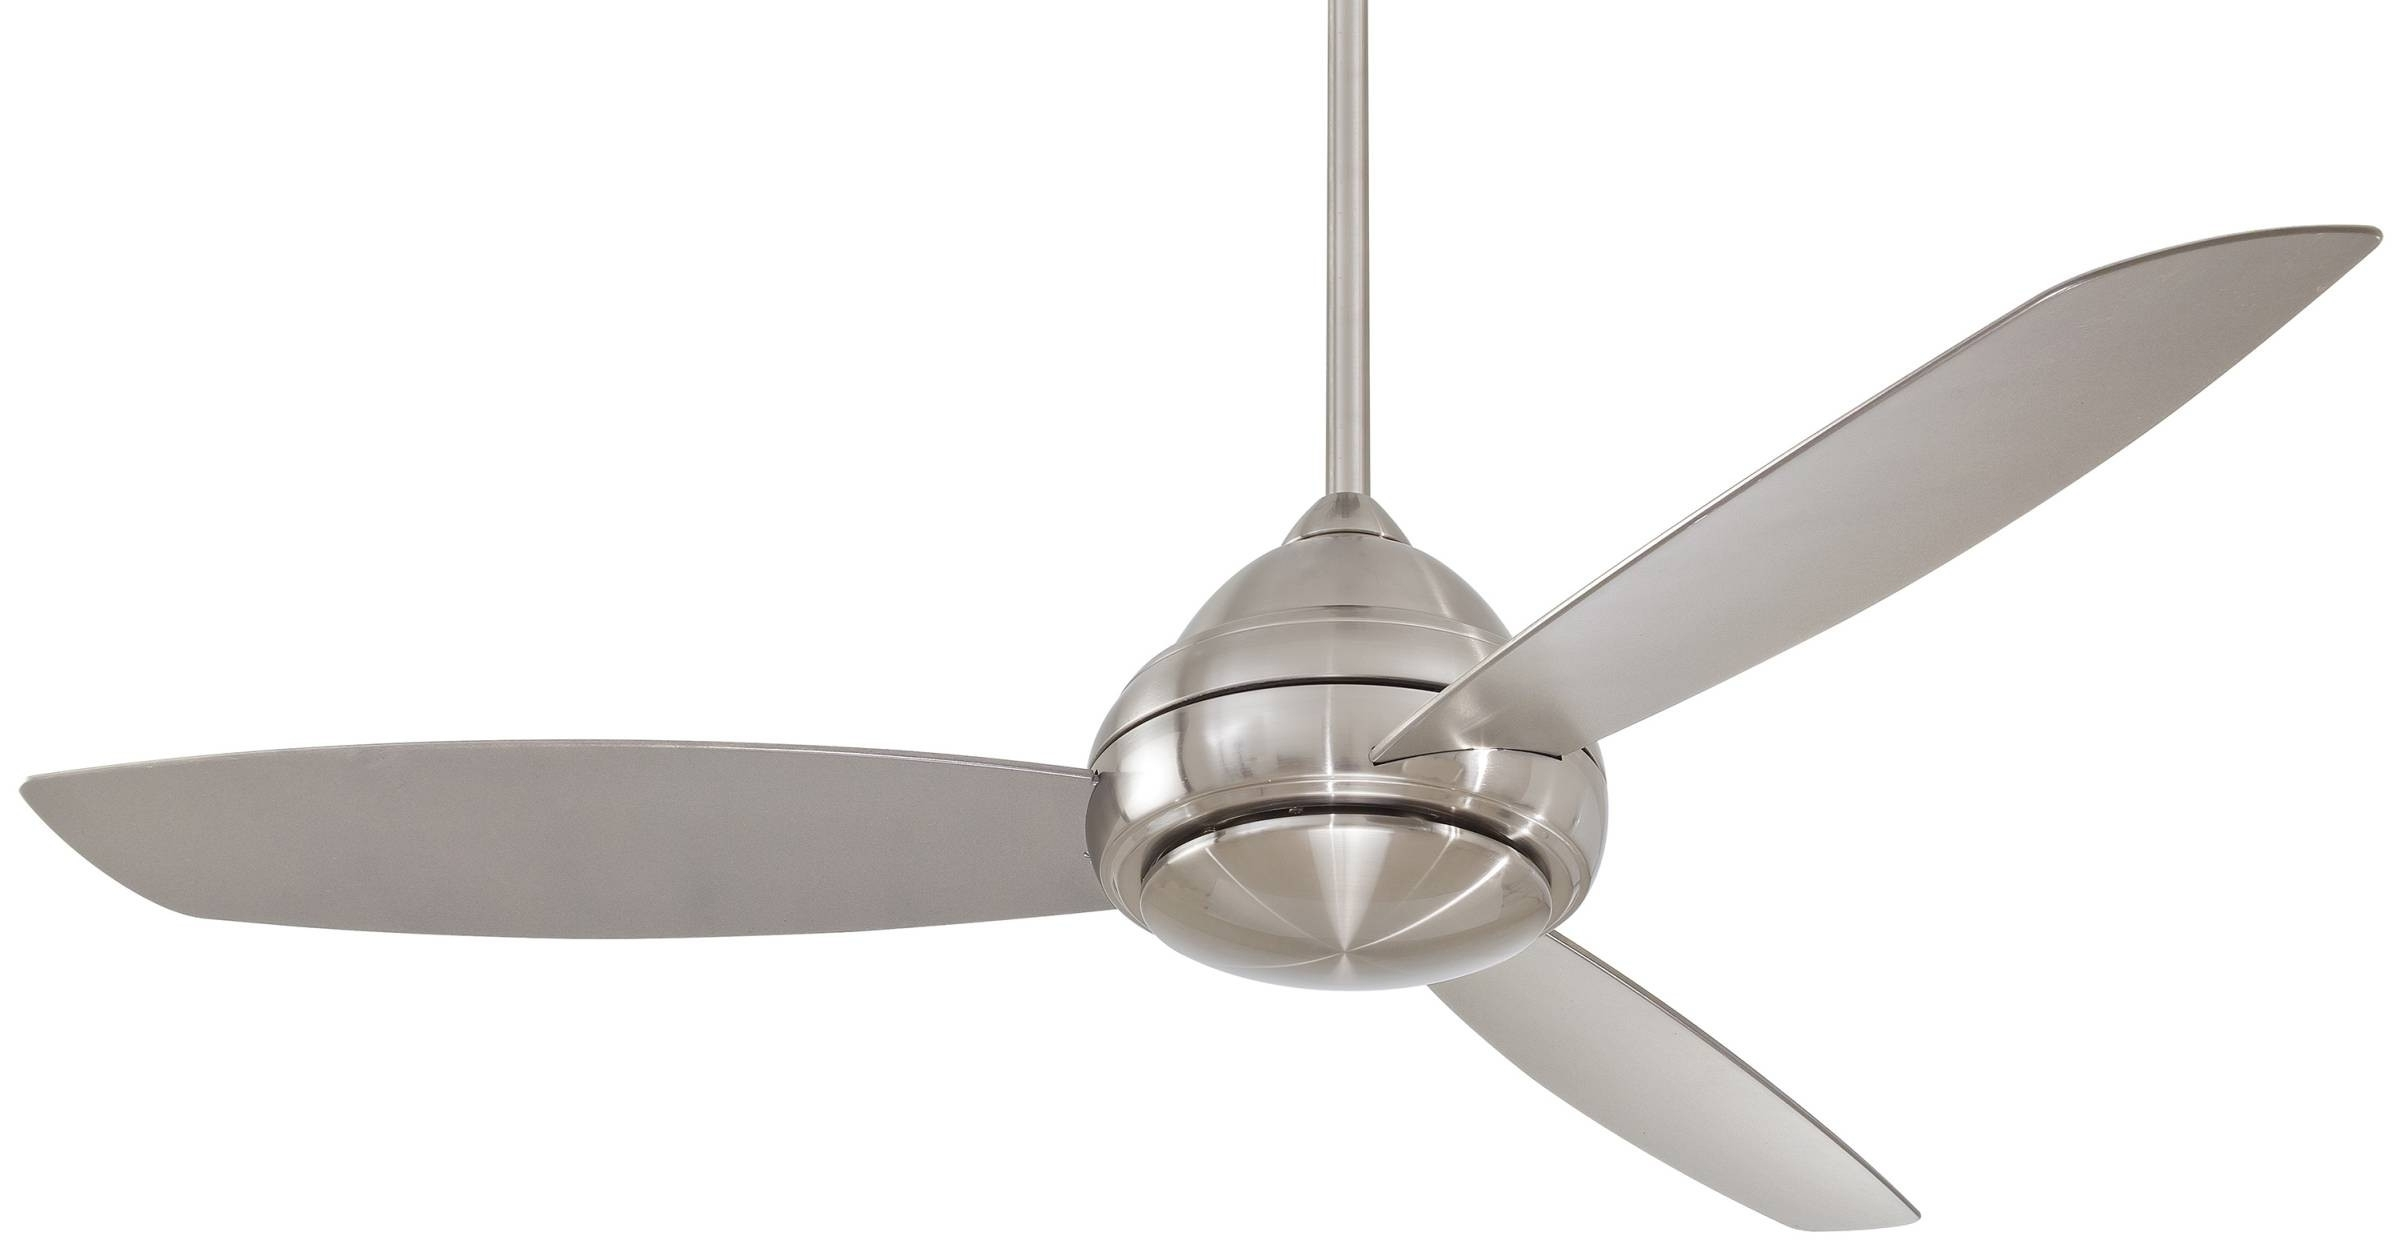 Stainless Steel Outdoor Ceiling Fan With Light • Ceiling Lights Regarding Latest Stainless Steel Outdoor Ceiling Lights (View 11 of 20)